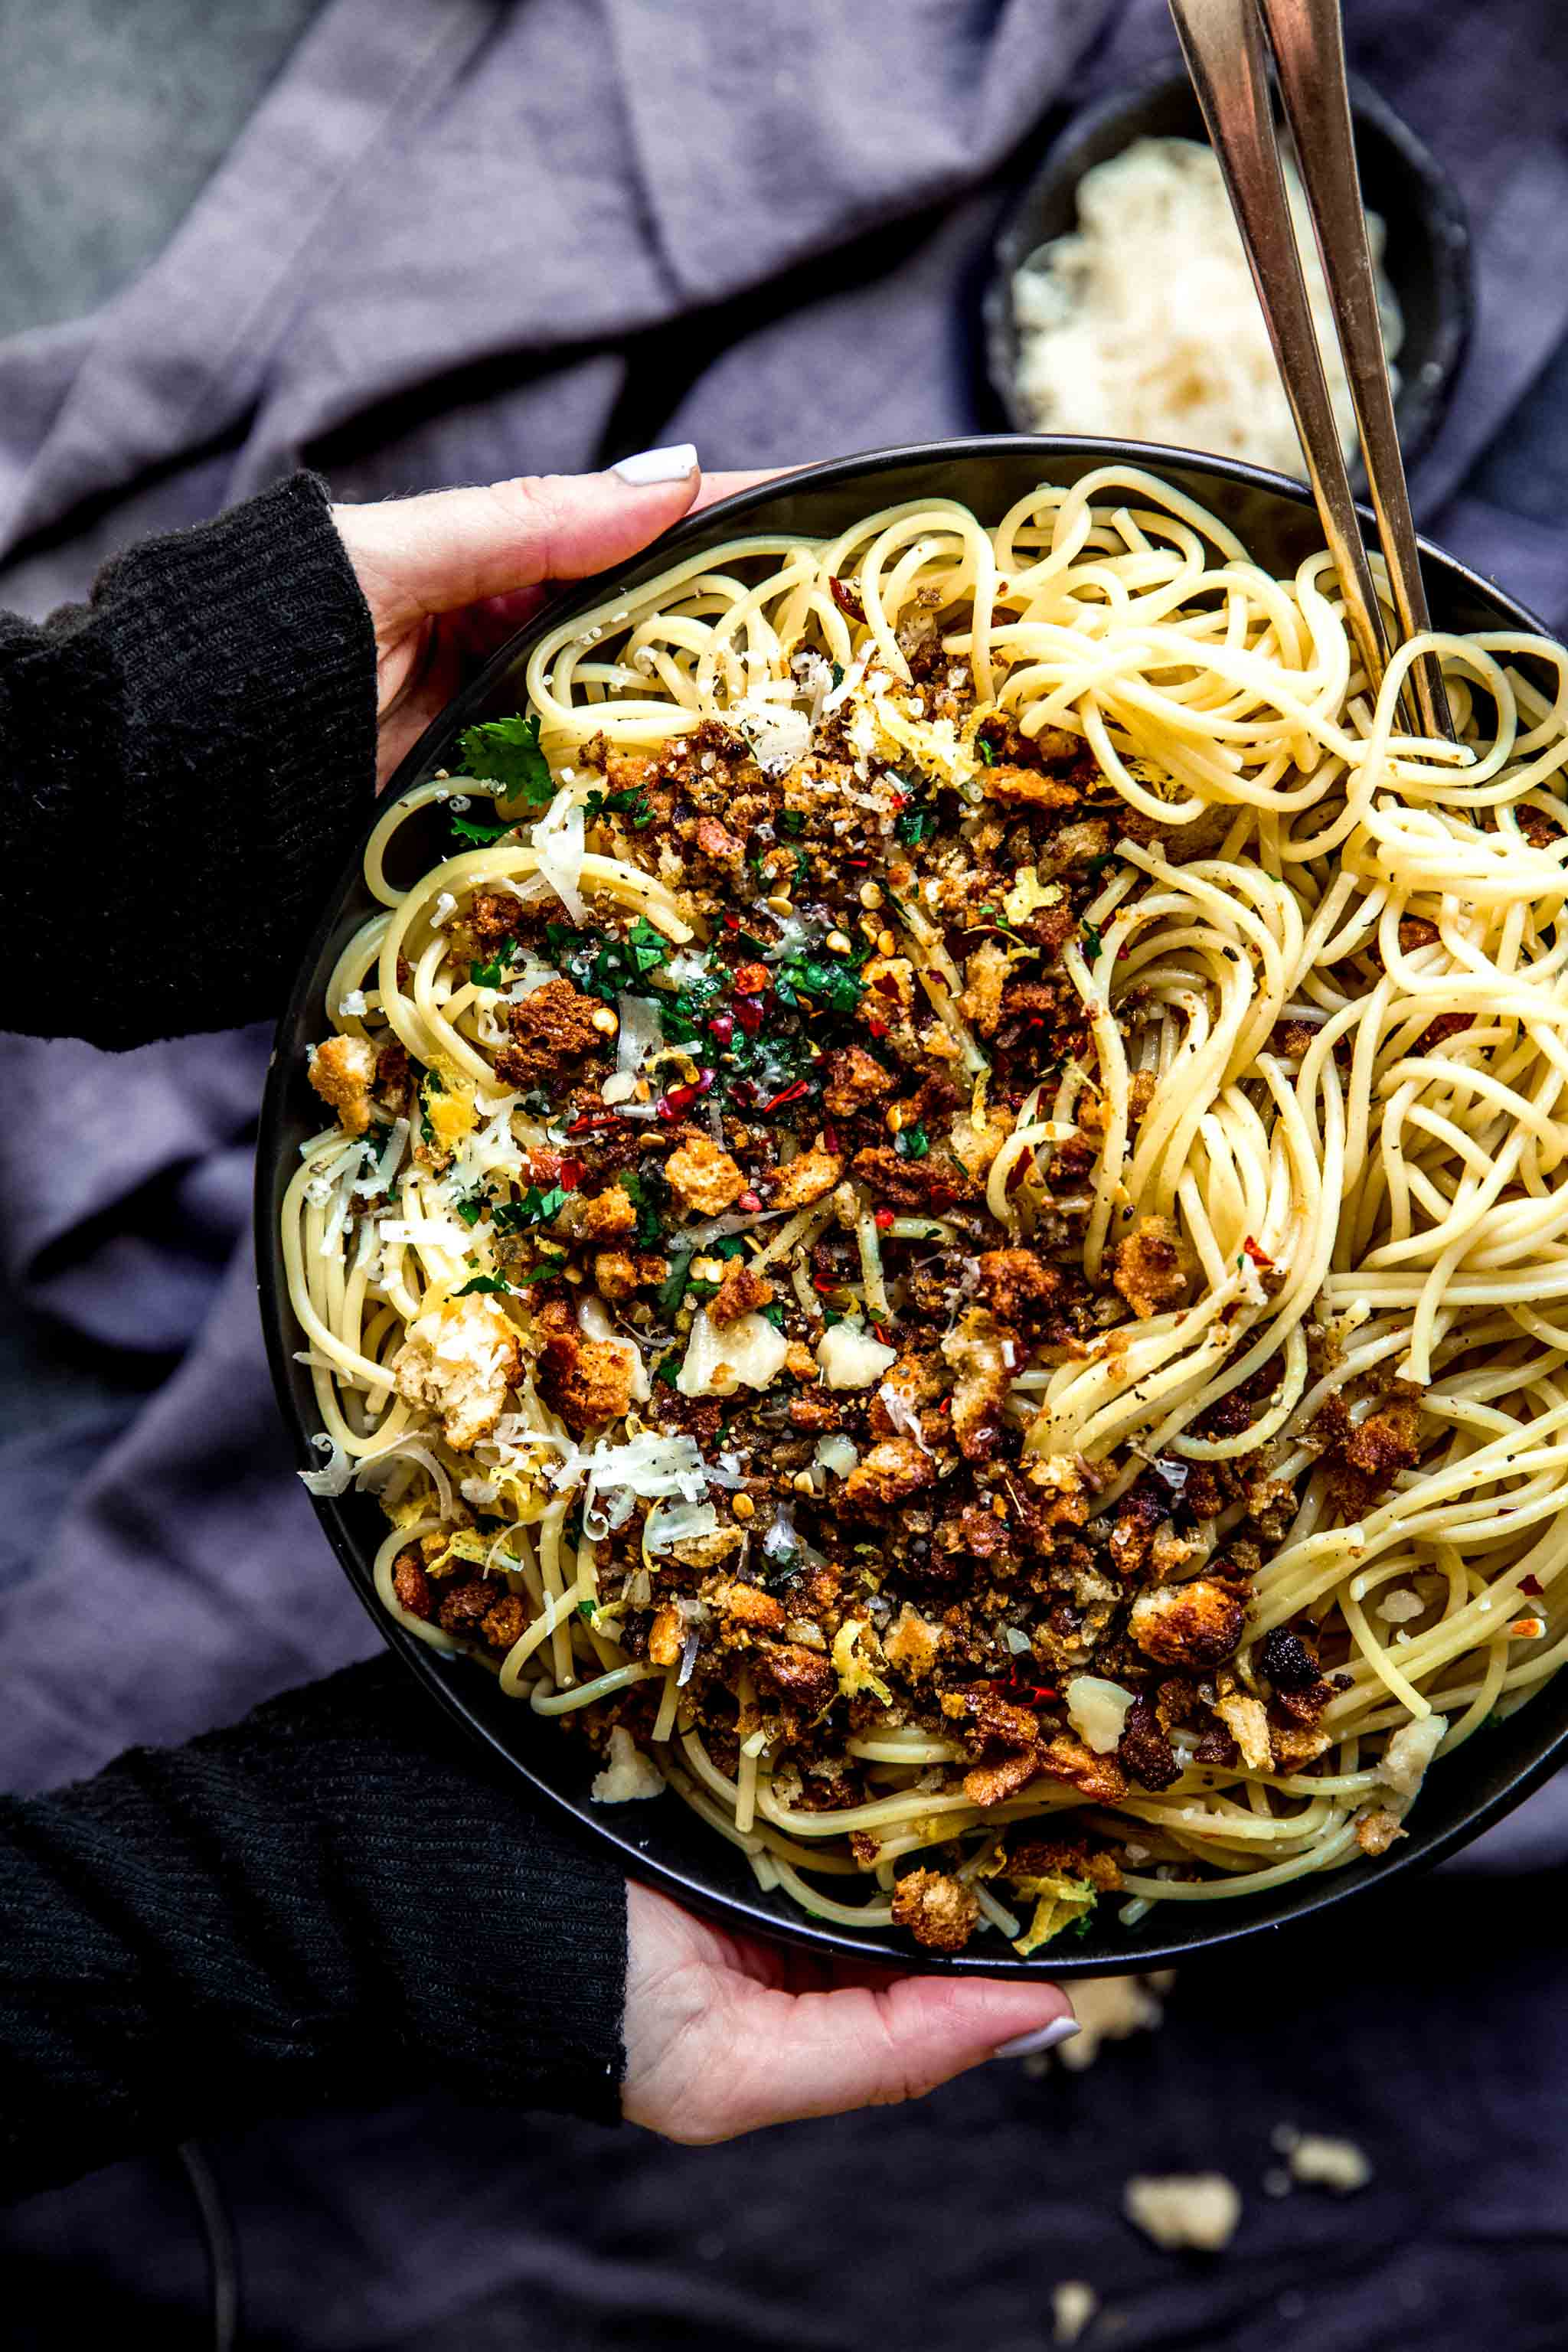 This Spaghetti Aglio e Olio will be on your dinner table in a hurry PLUS it's super budget friendly using ingredients you probably already have on hand.